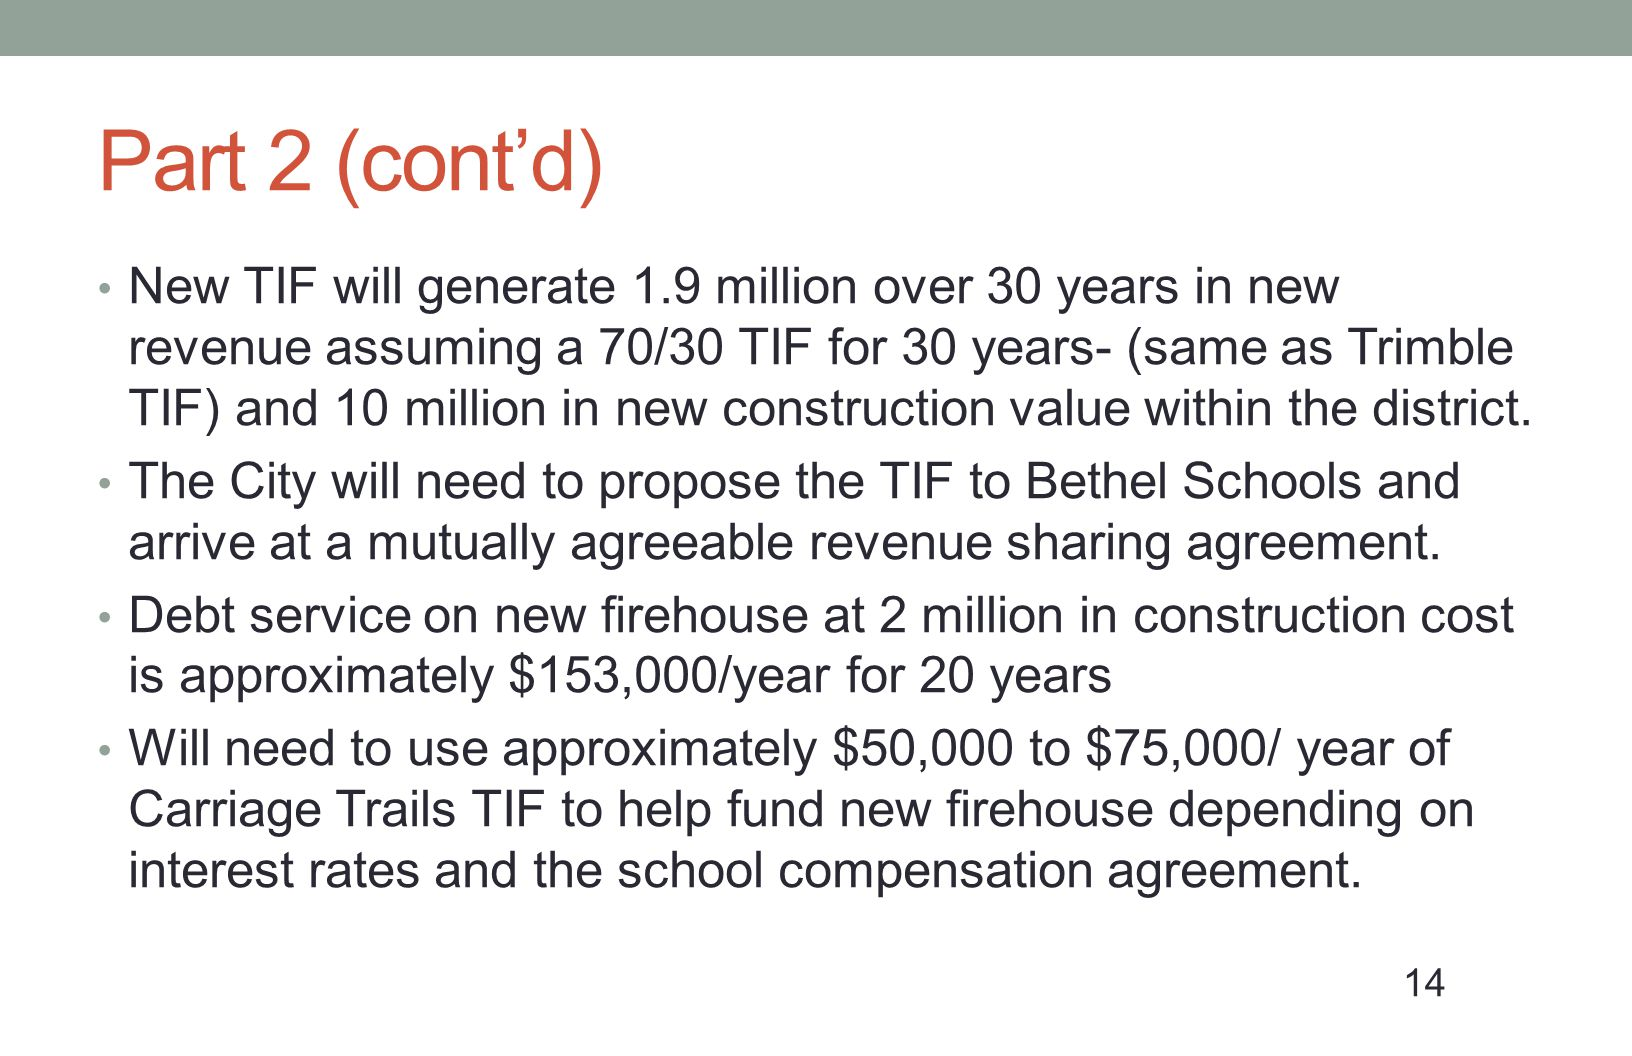 Part 2 (contd) New TIF will generate 1.9 million over 30 years in new revenue assuming a 70/30 TIF for 30 years- (same as Trimble TIF) and 10 million